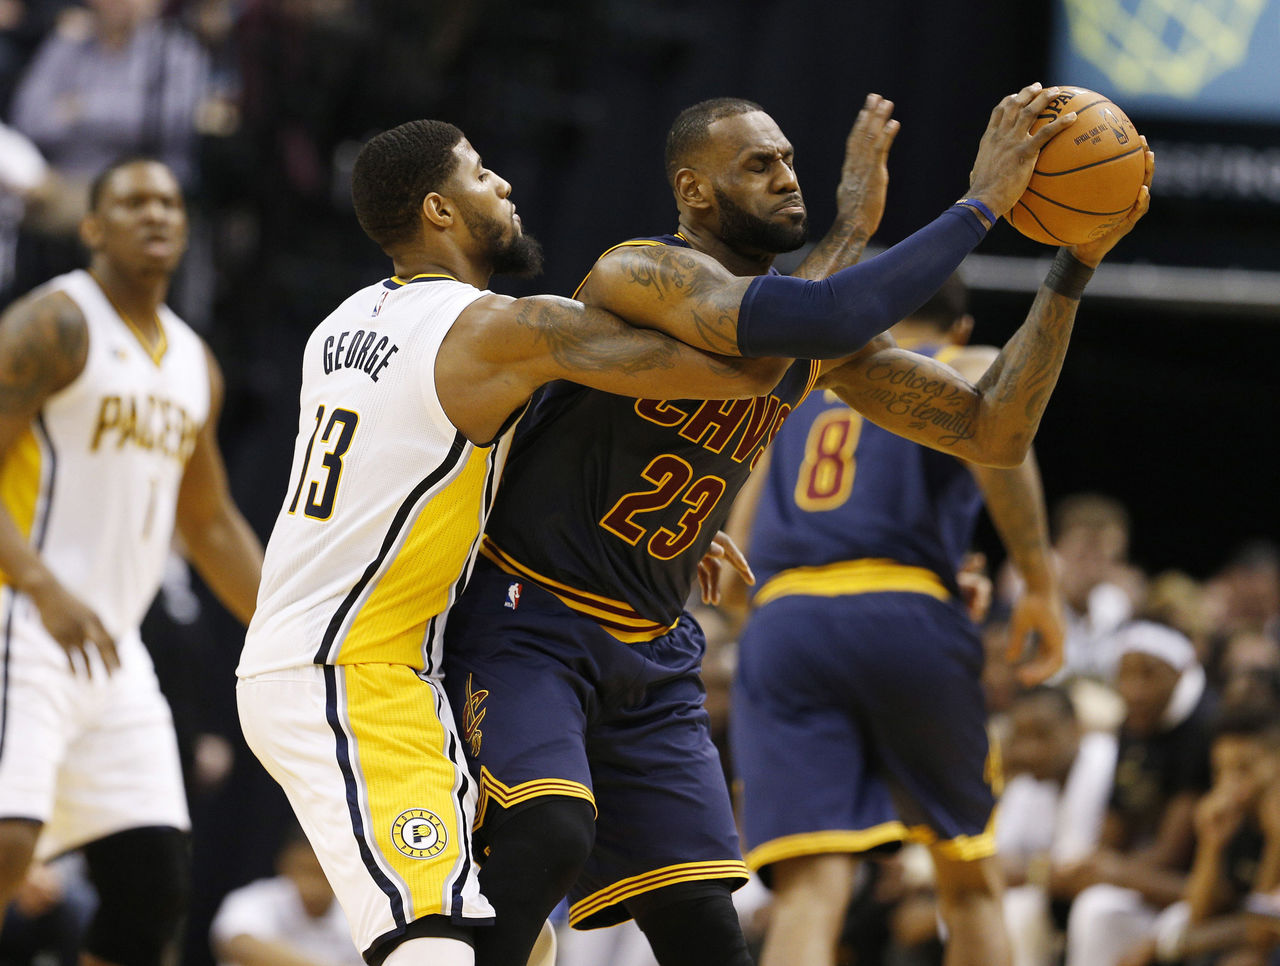 Cropped 2017 02 09t033511z 307242876 nocid rtrmadp 3 nba cleveland cavaliers at indiana pacers